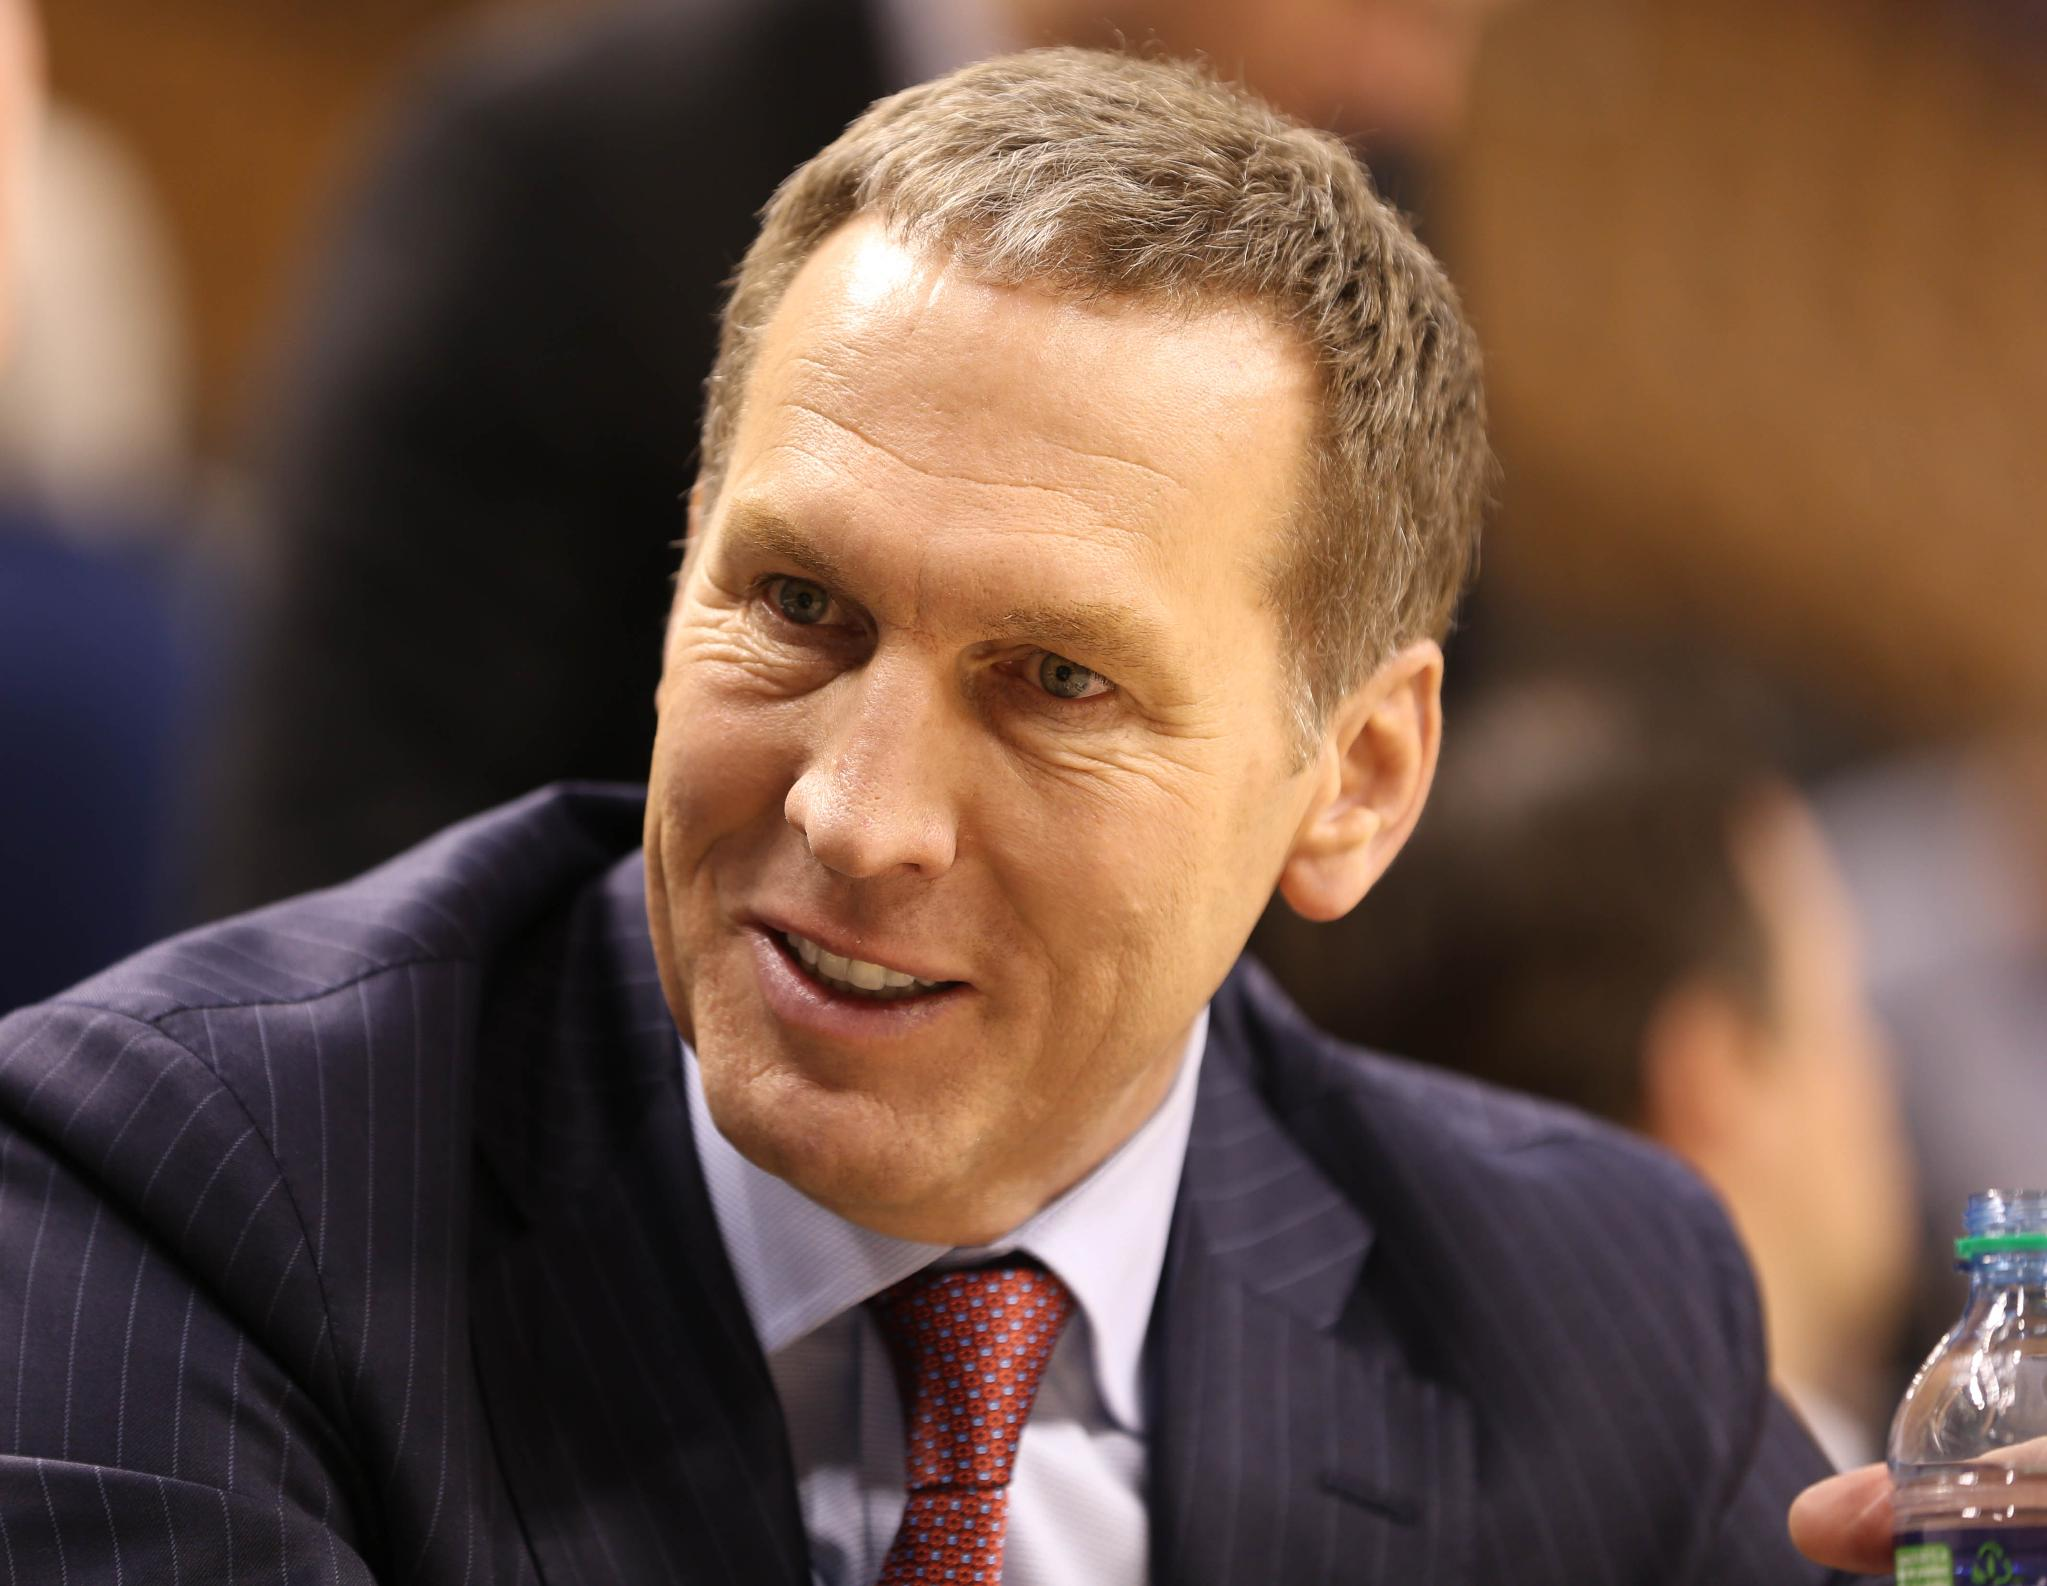 bryan colangelo resigned today - HD2047×1586